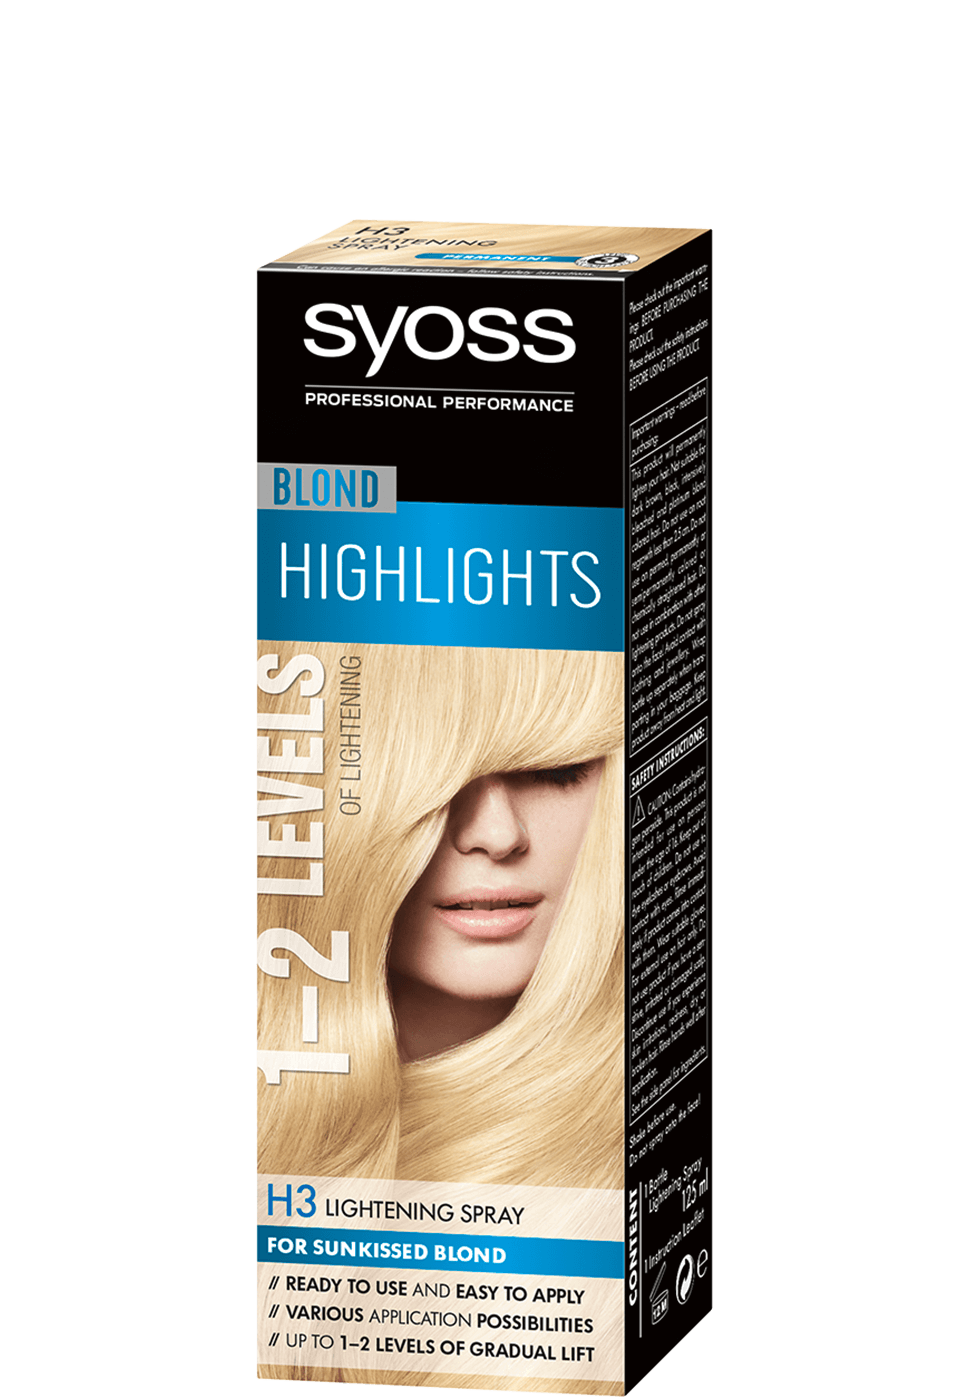 syoss_com_color_blond_highlights_h3_lightening_spray_970x1400